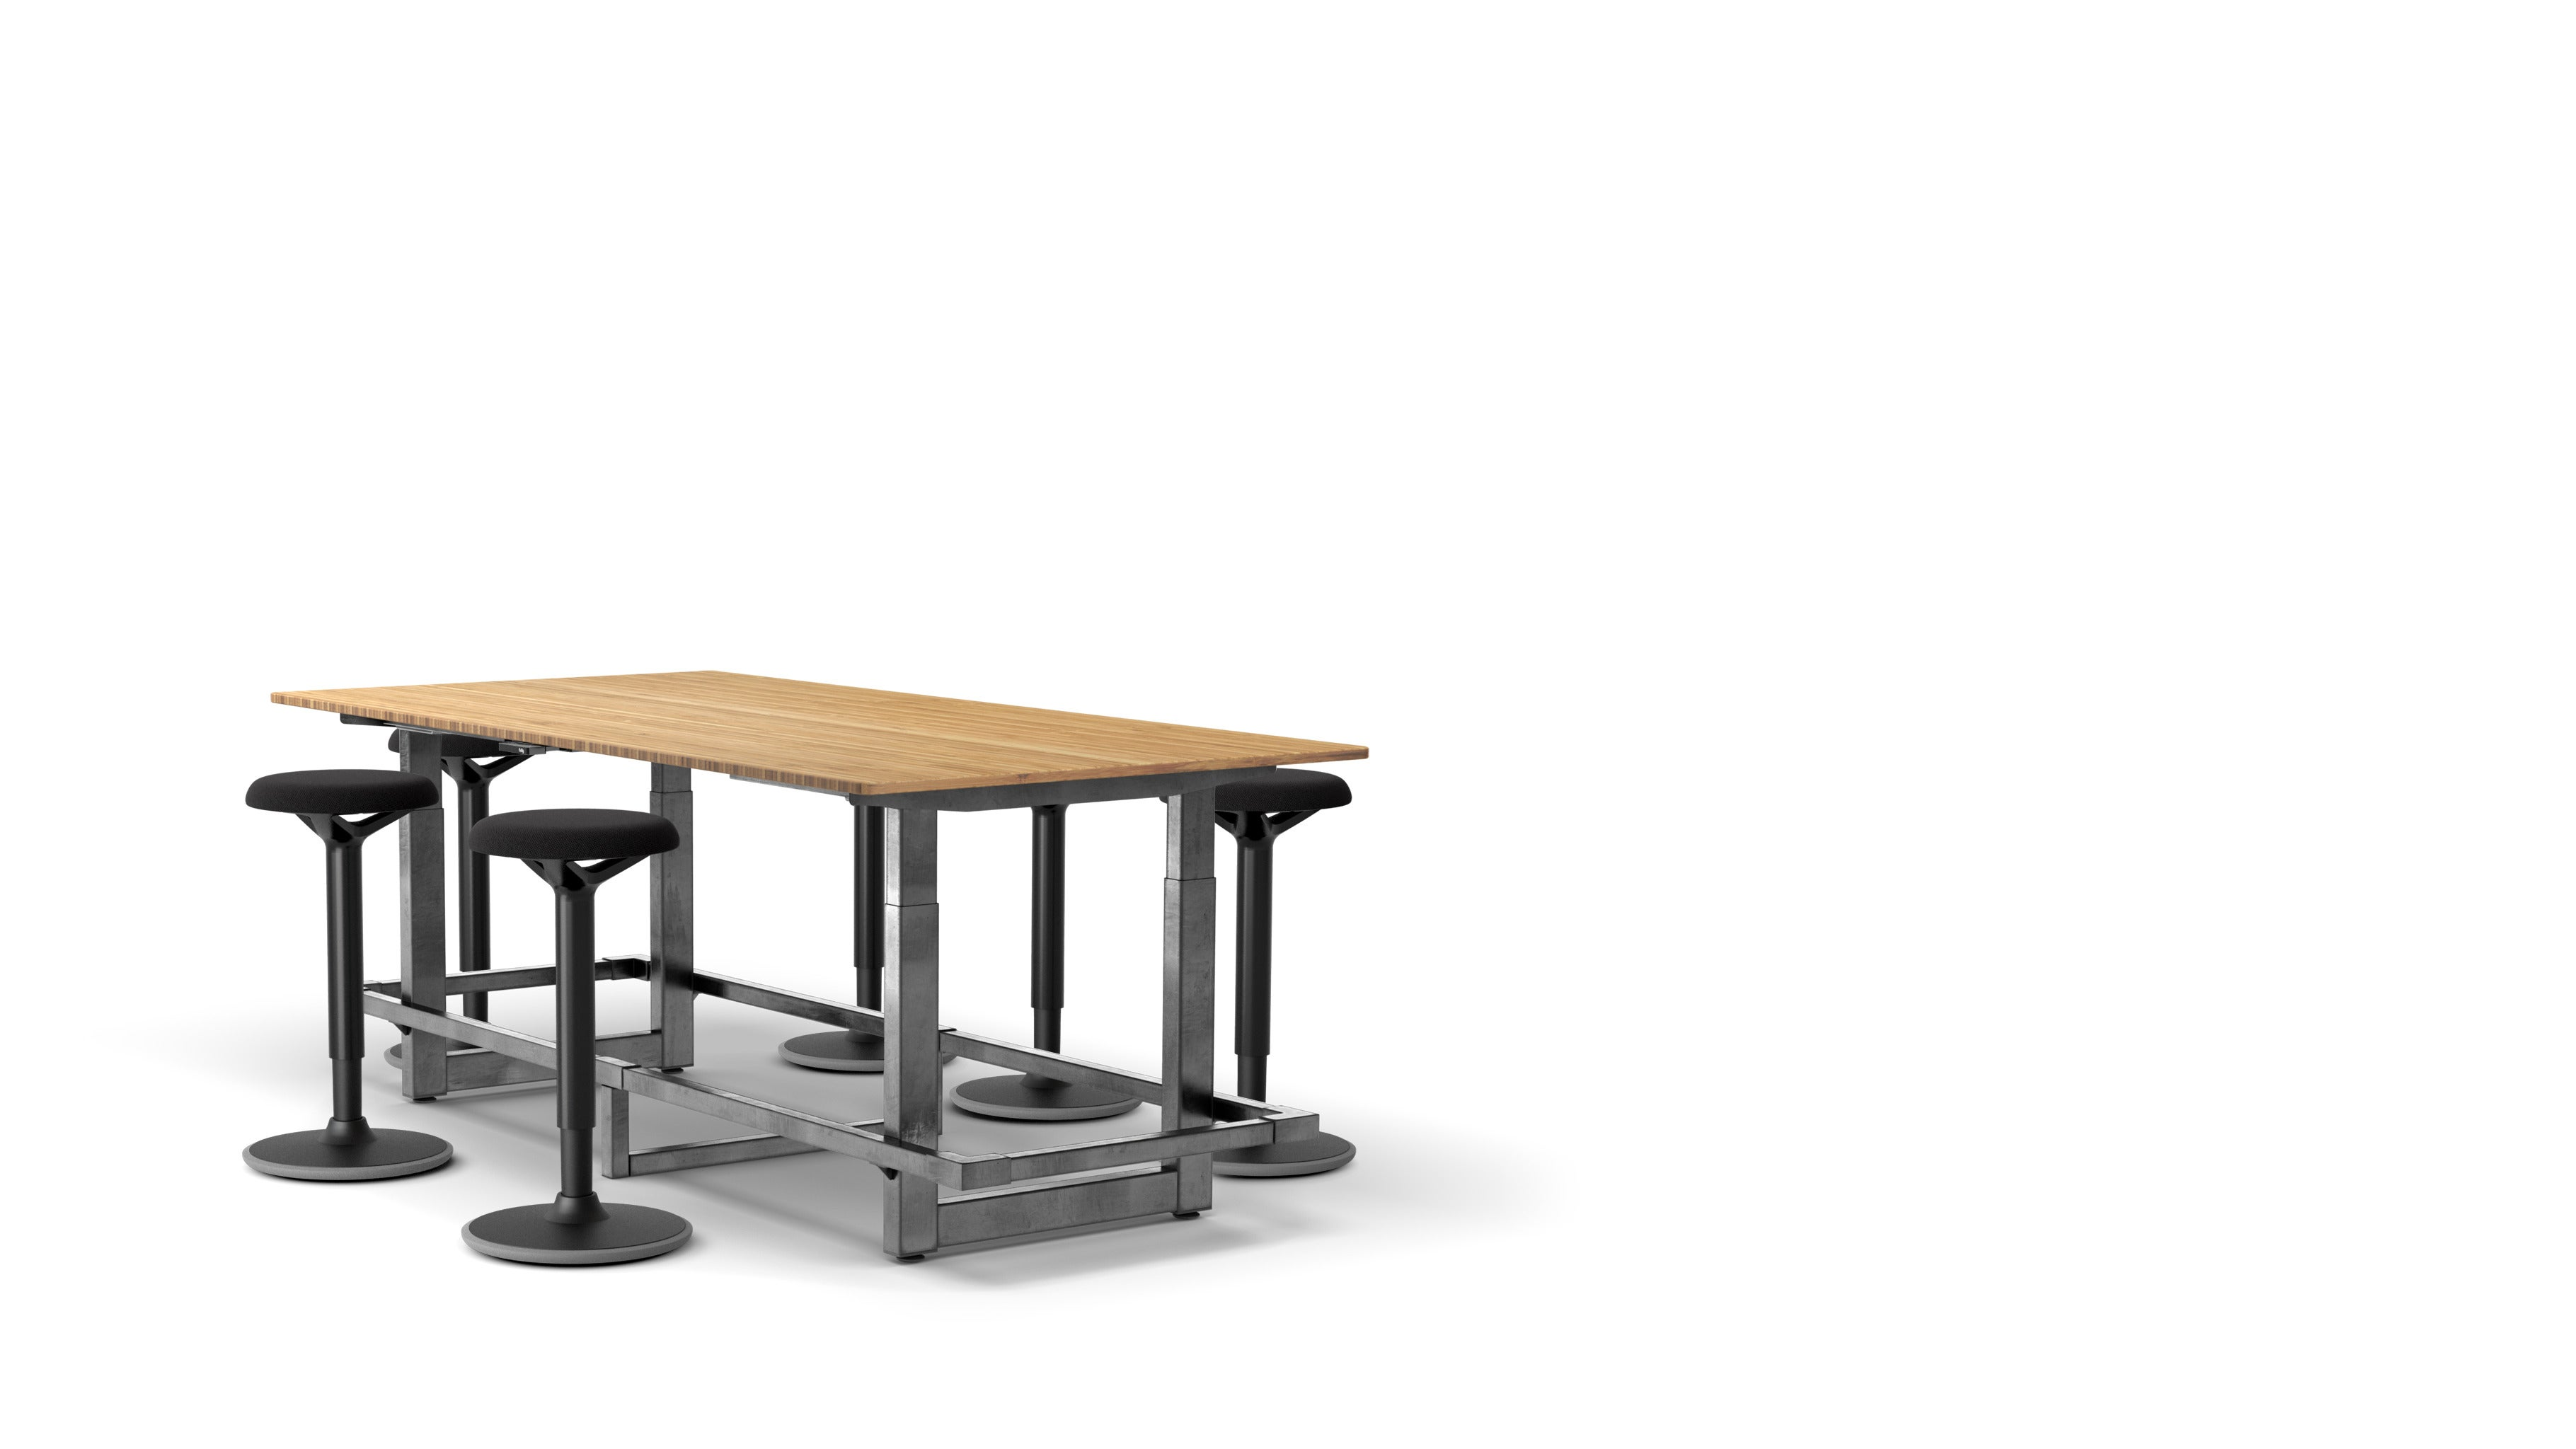 Jarvis Bamboo Adjustable-Height Conference Table Popular Setup 2